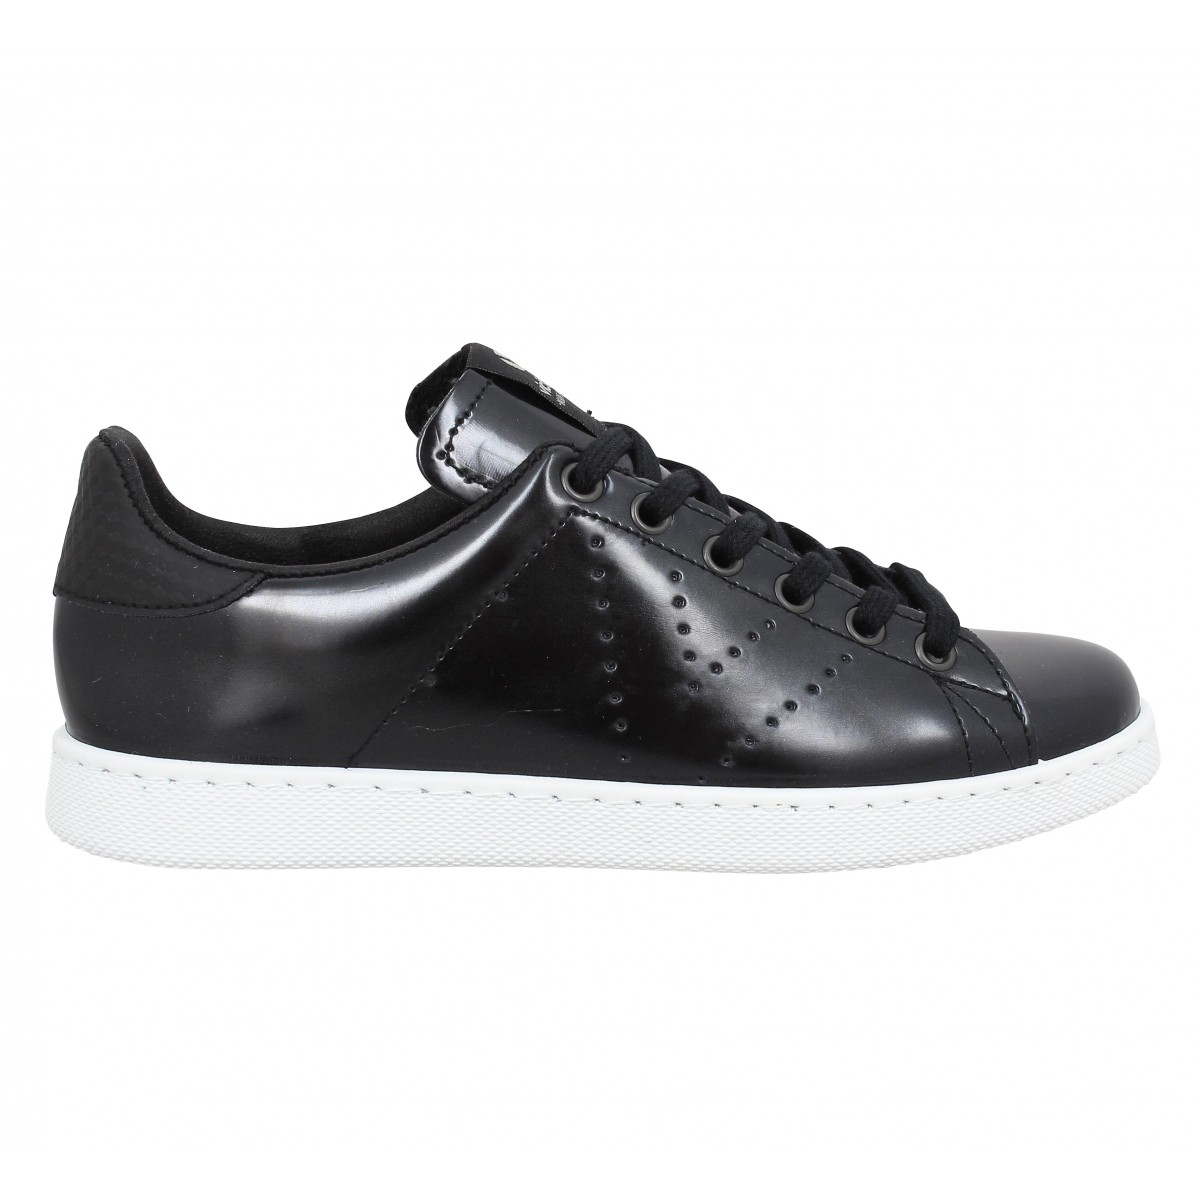 Chaussures Victoria noires Casual homme ctVT9s